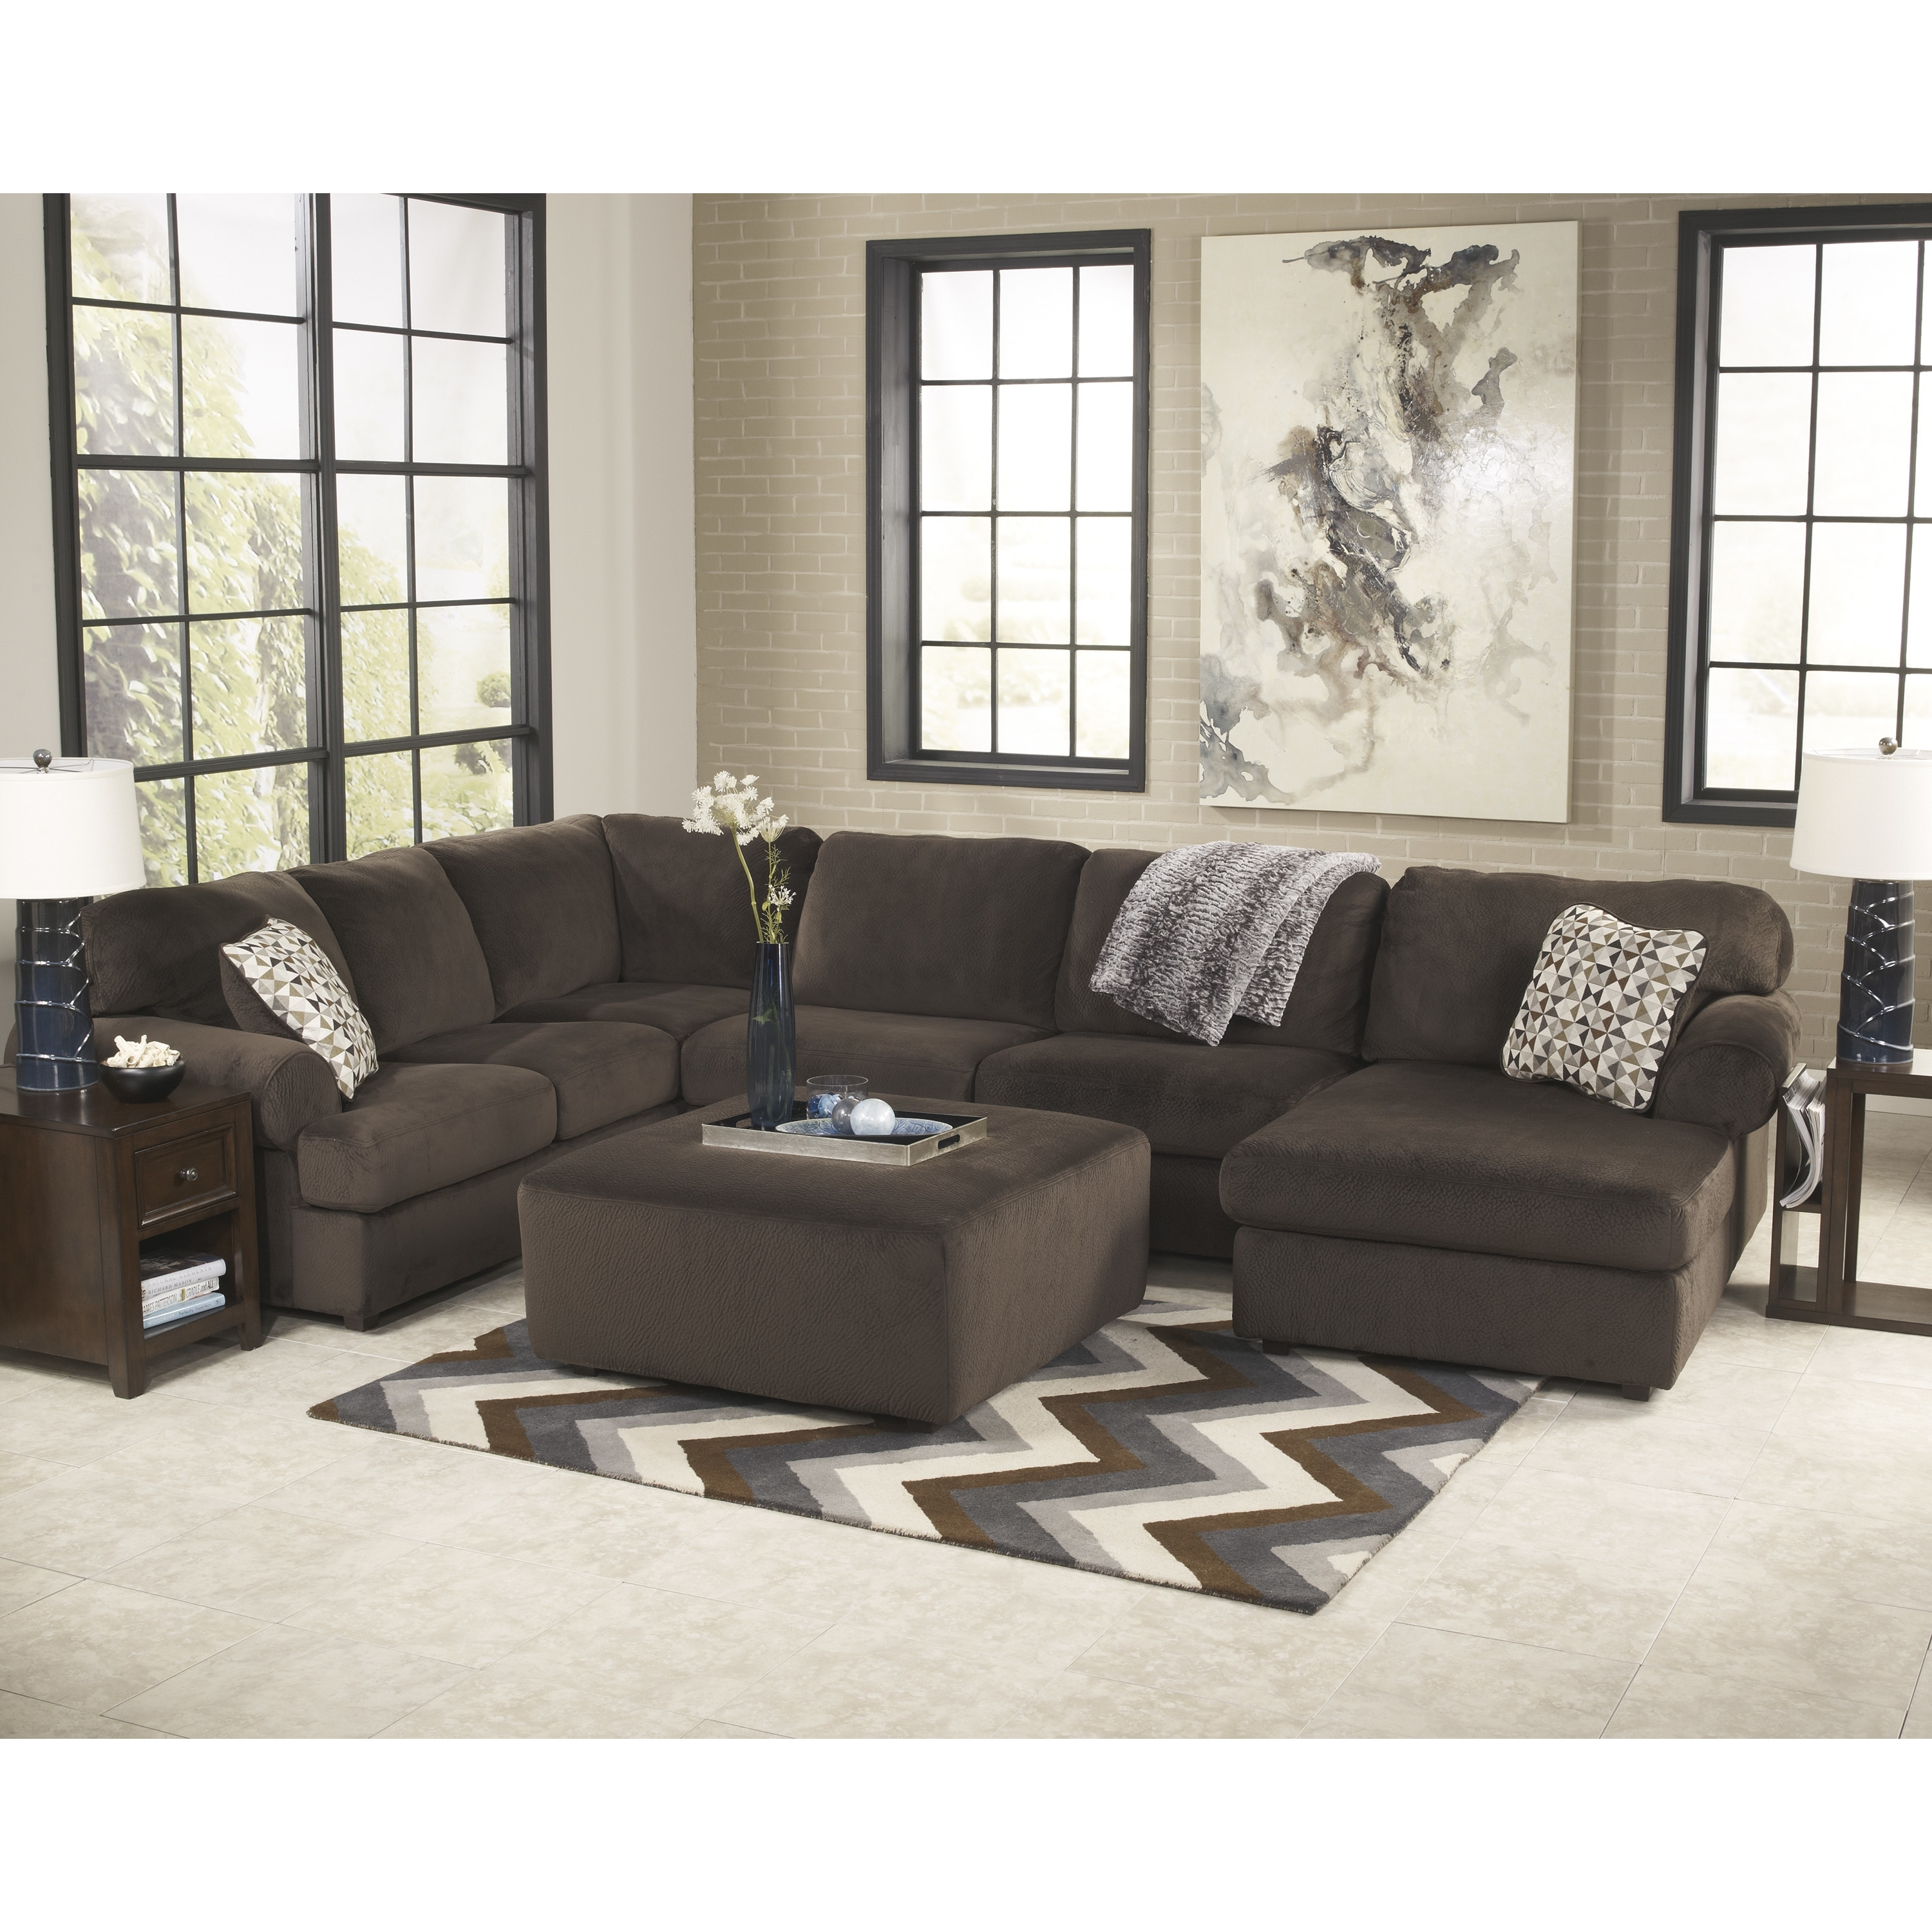 Well Liked Wayfair Sectional Sofas In Free Wayfair Sectionals Furniture Using Pretty Cheap Sectional (View 20 of 20)